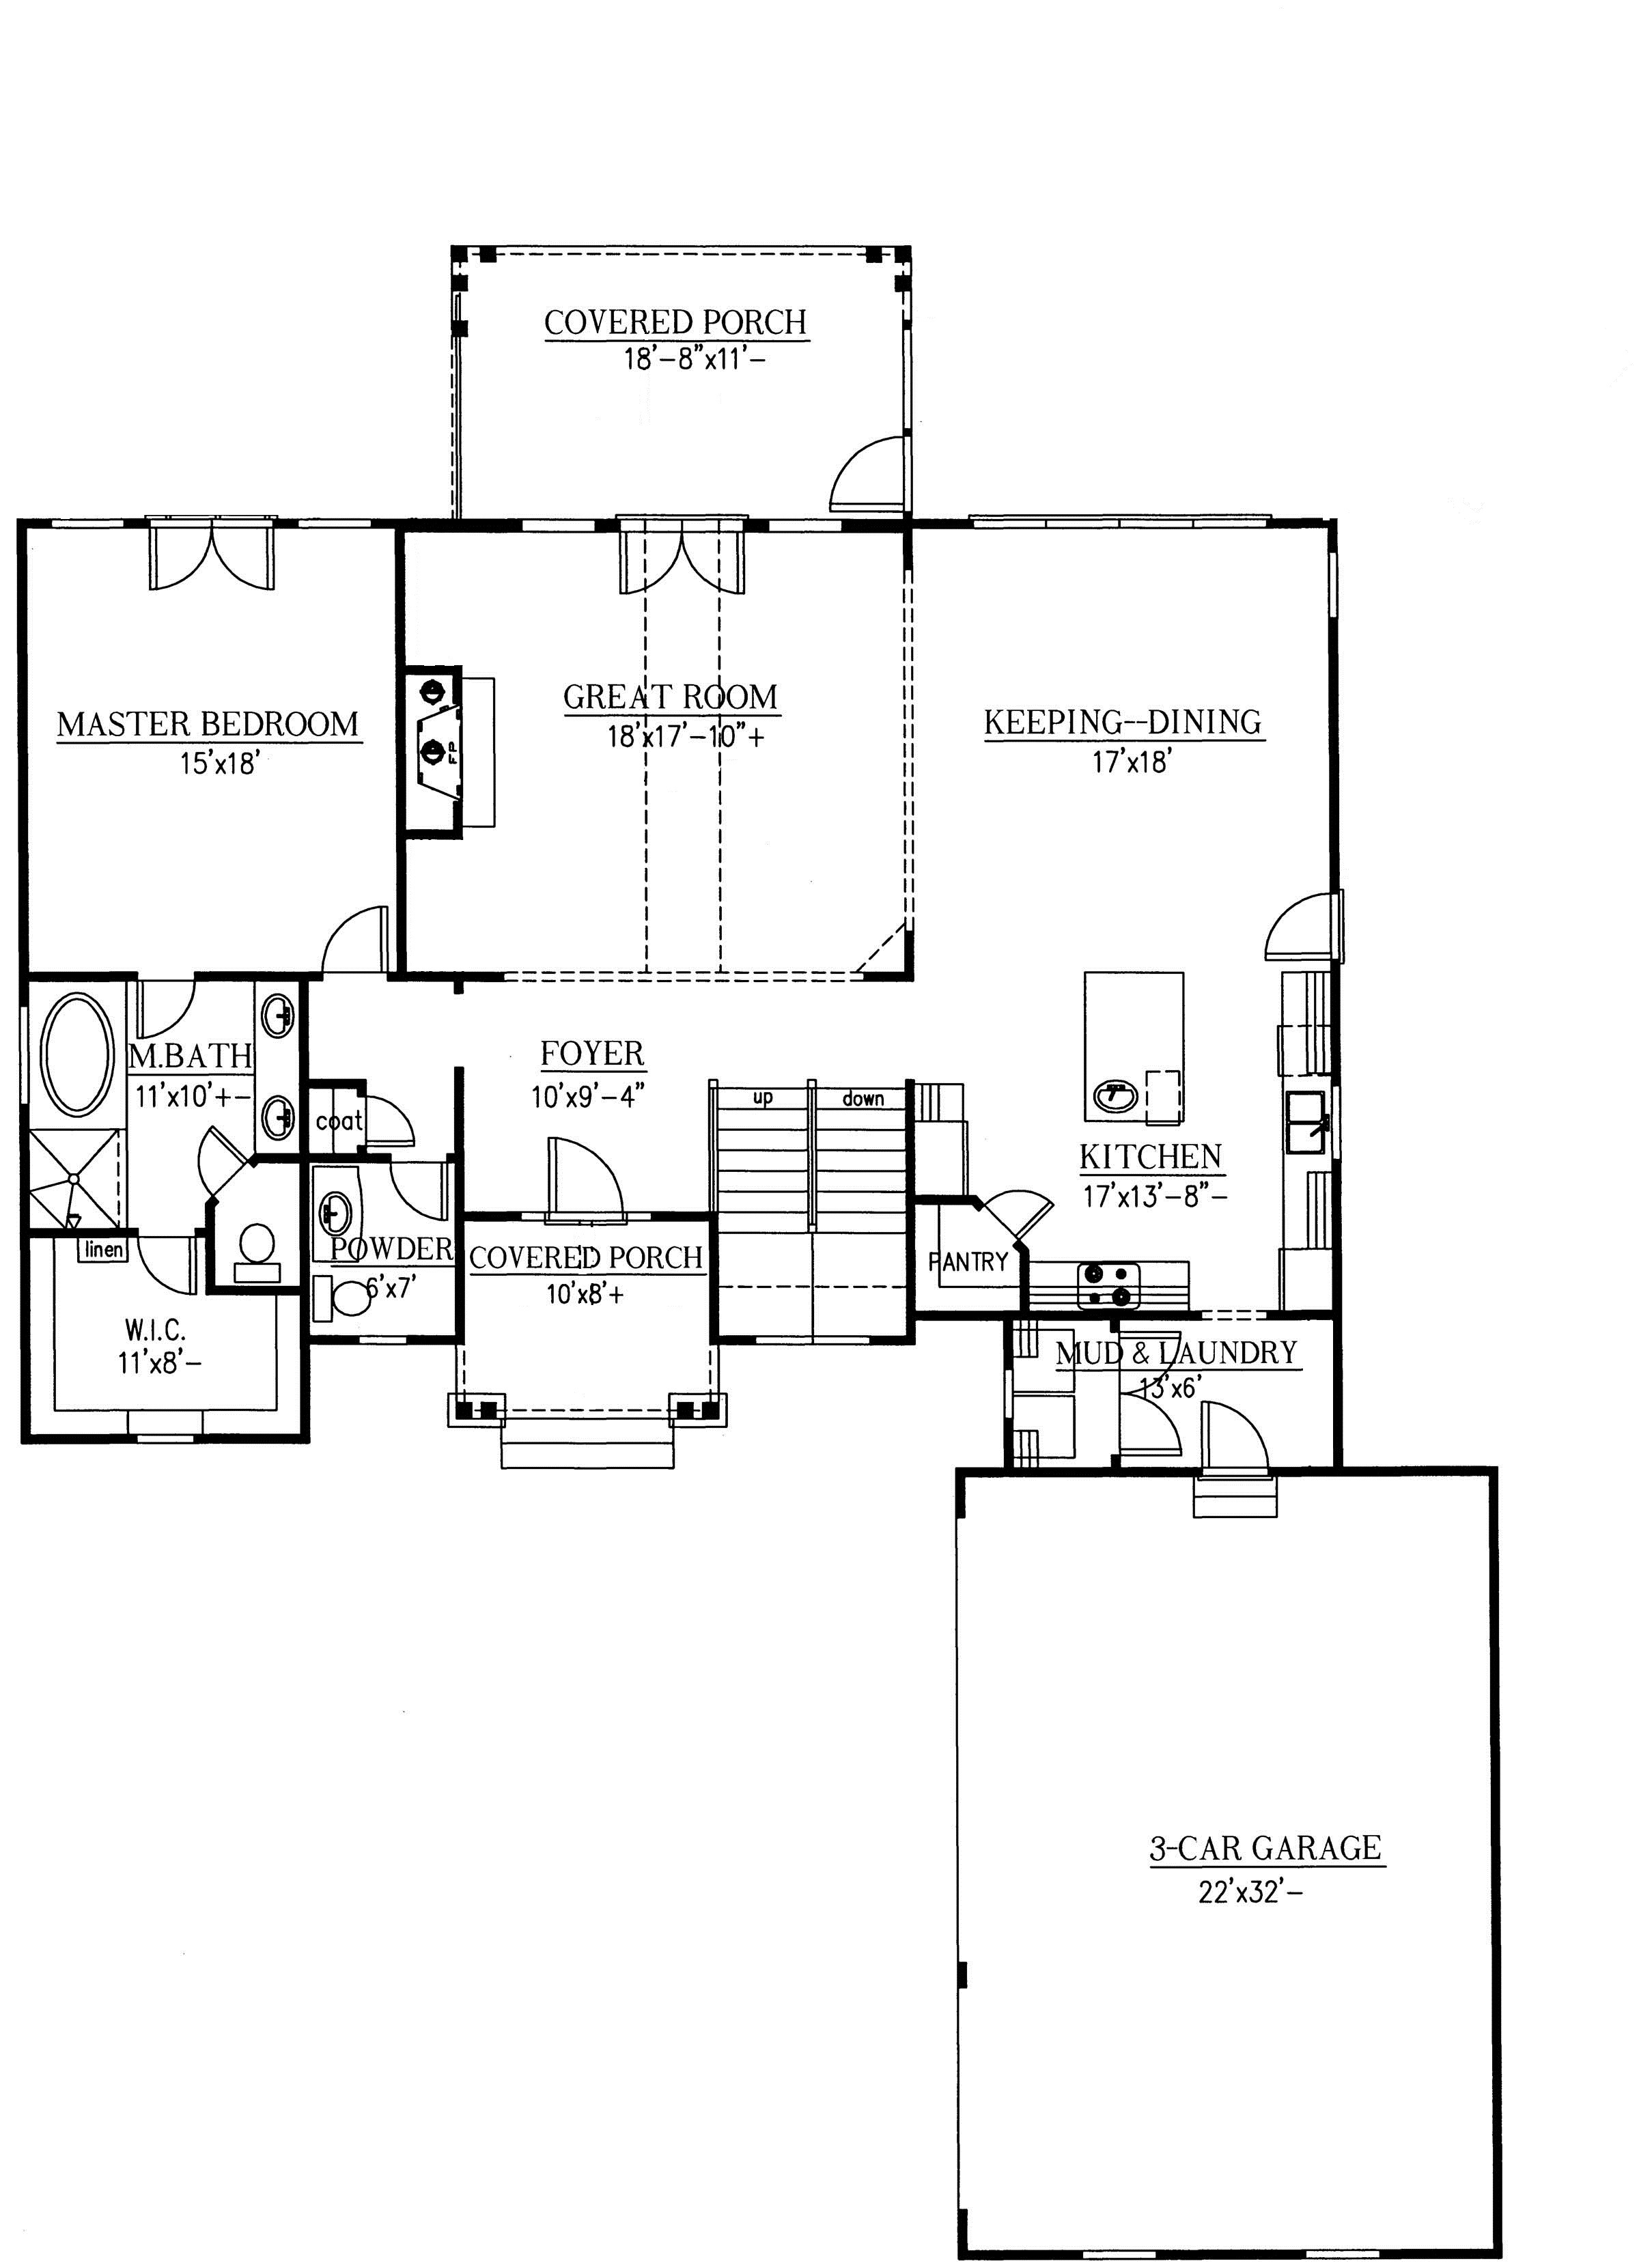 Great room with loft first floor plan sdl custom homes for Great room floor plans